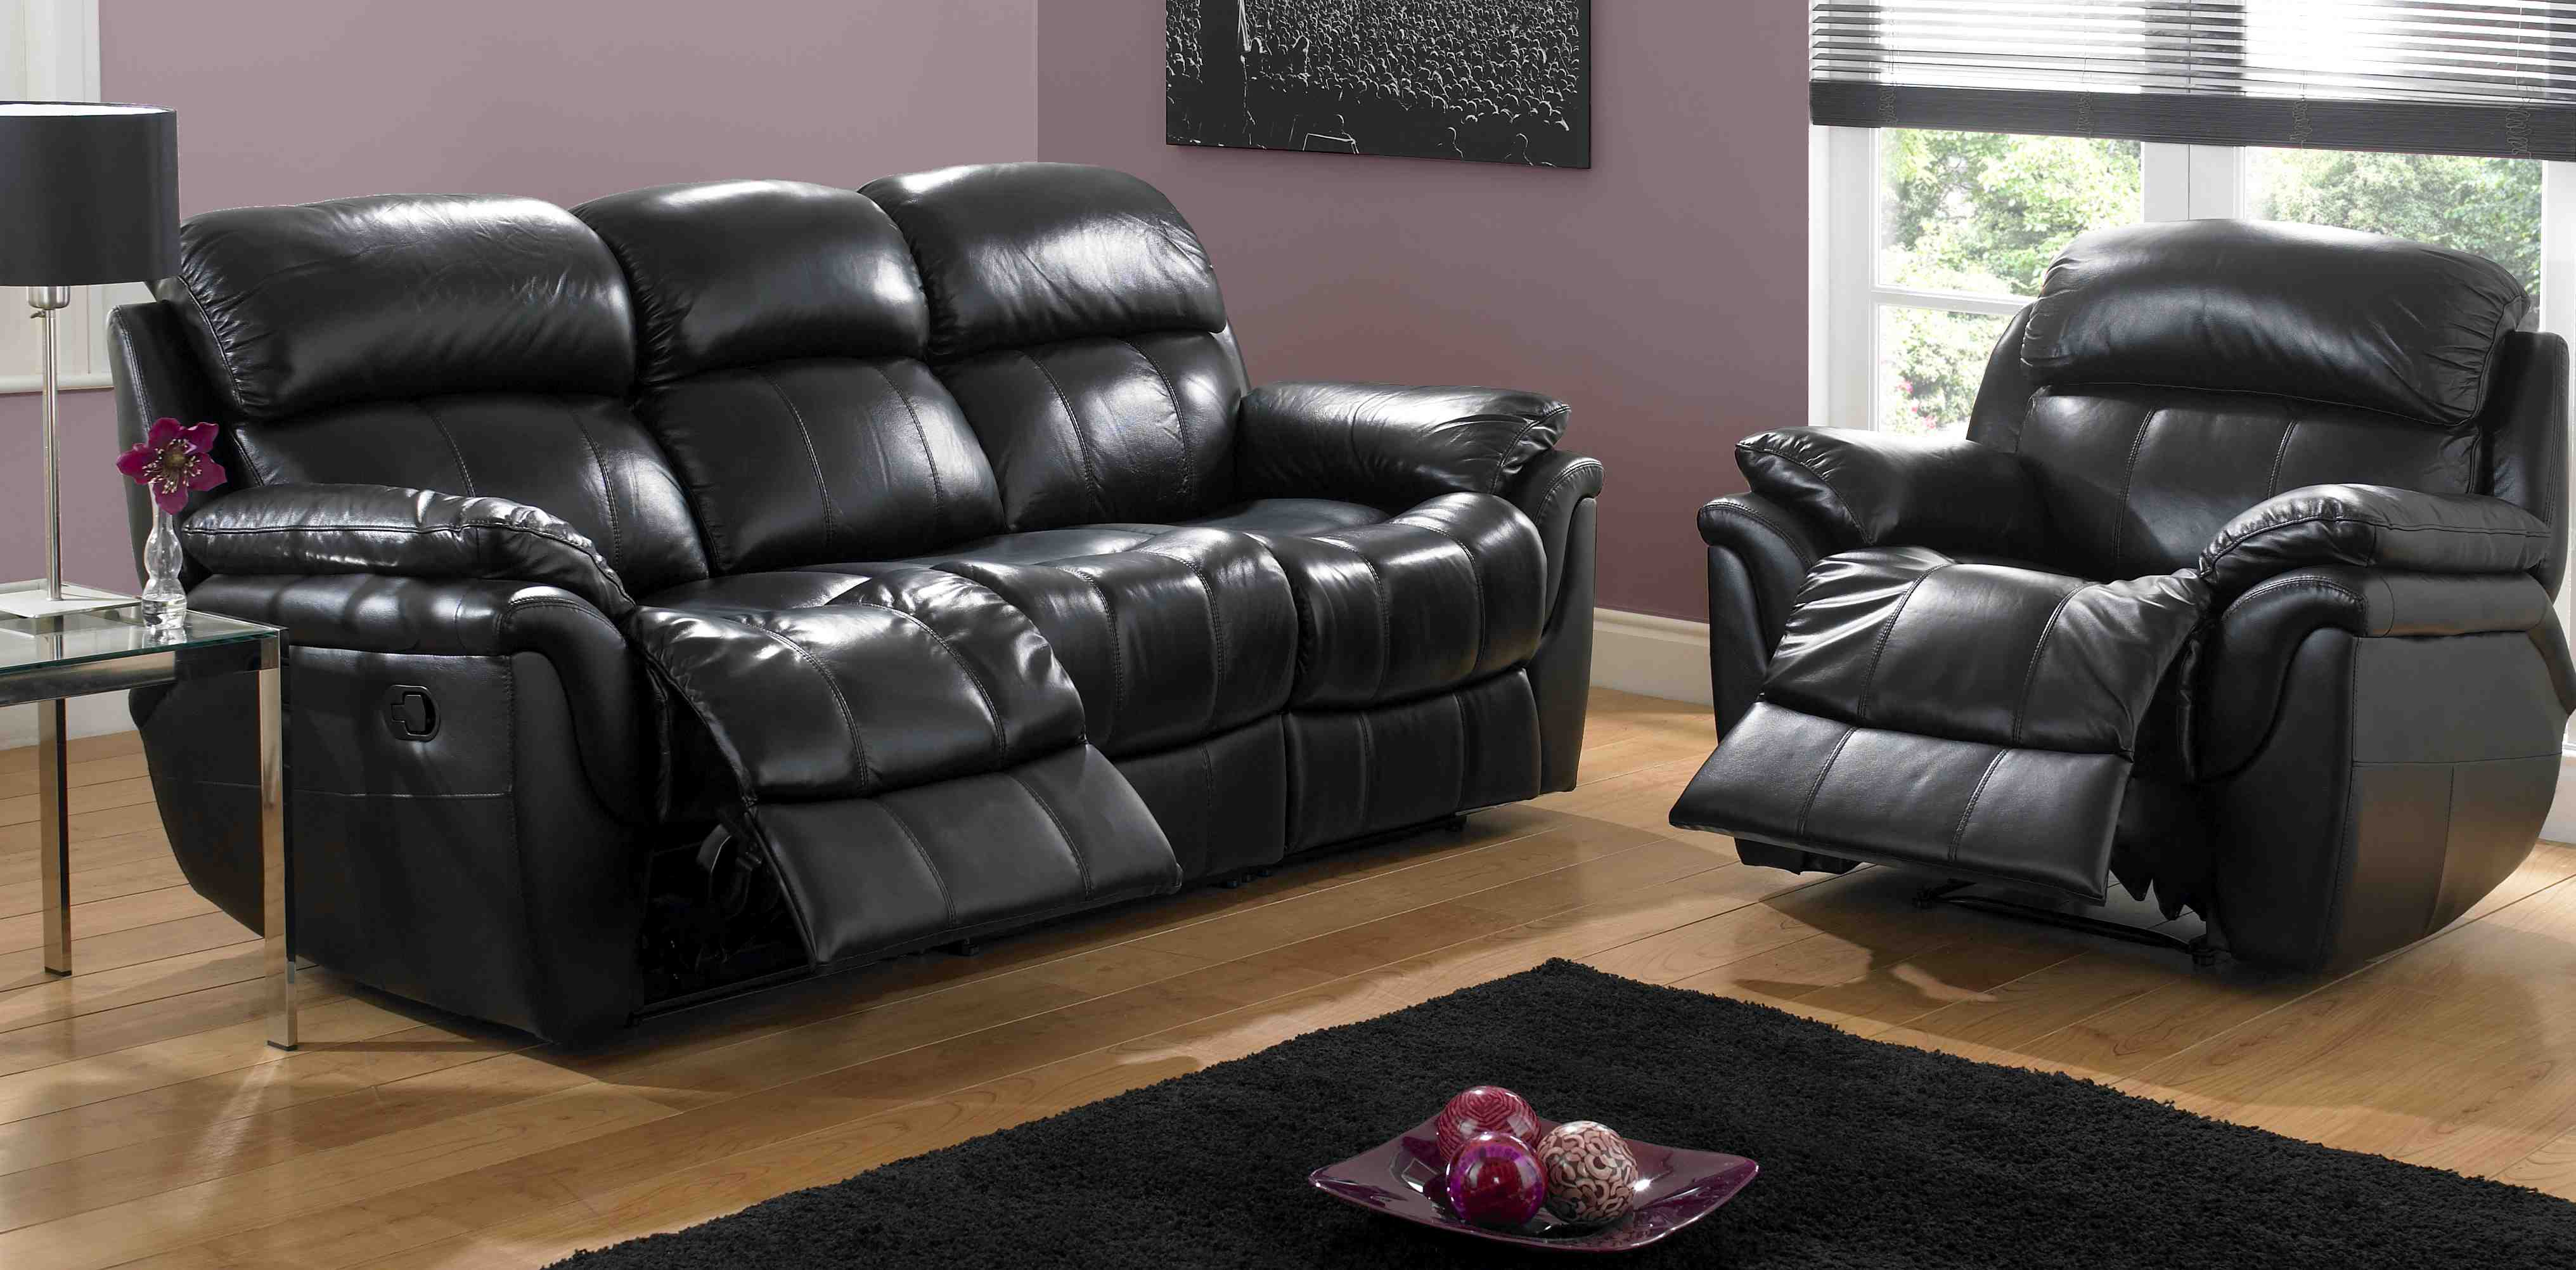 Leather Recliner Sectional Sofa | Leather Sofas with Recliners | Leather  Reclining Sofa